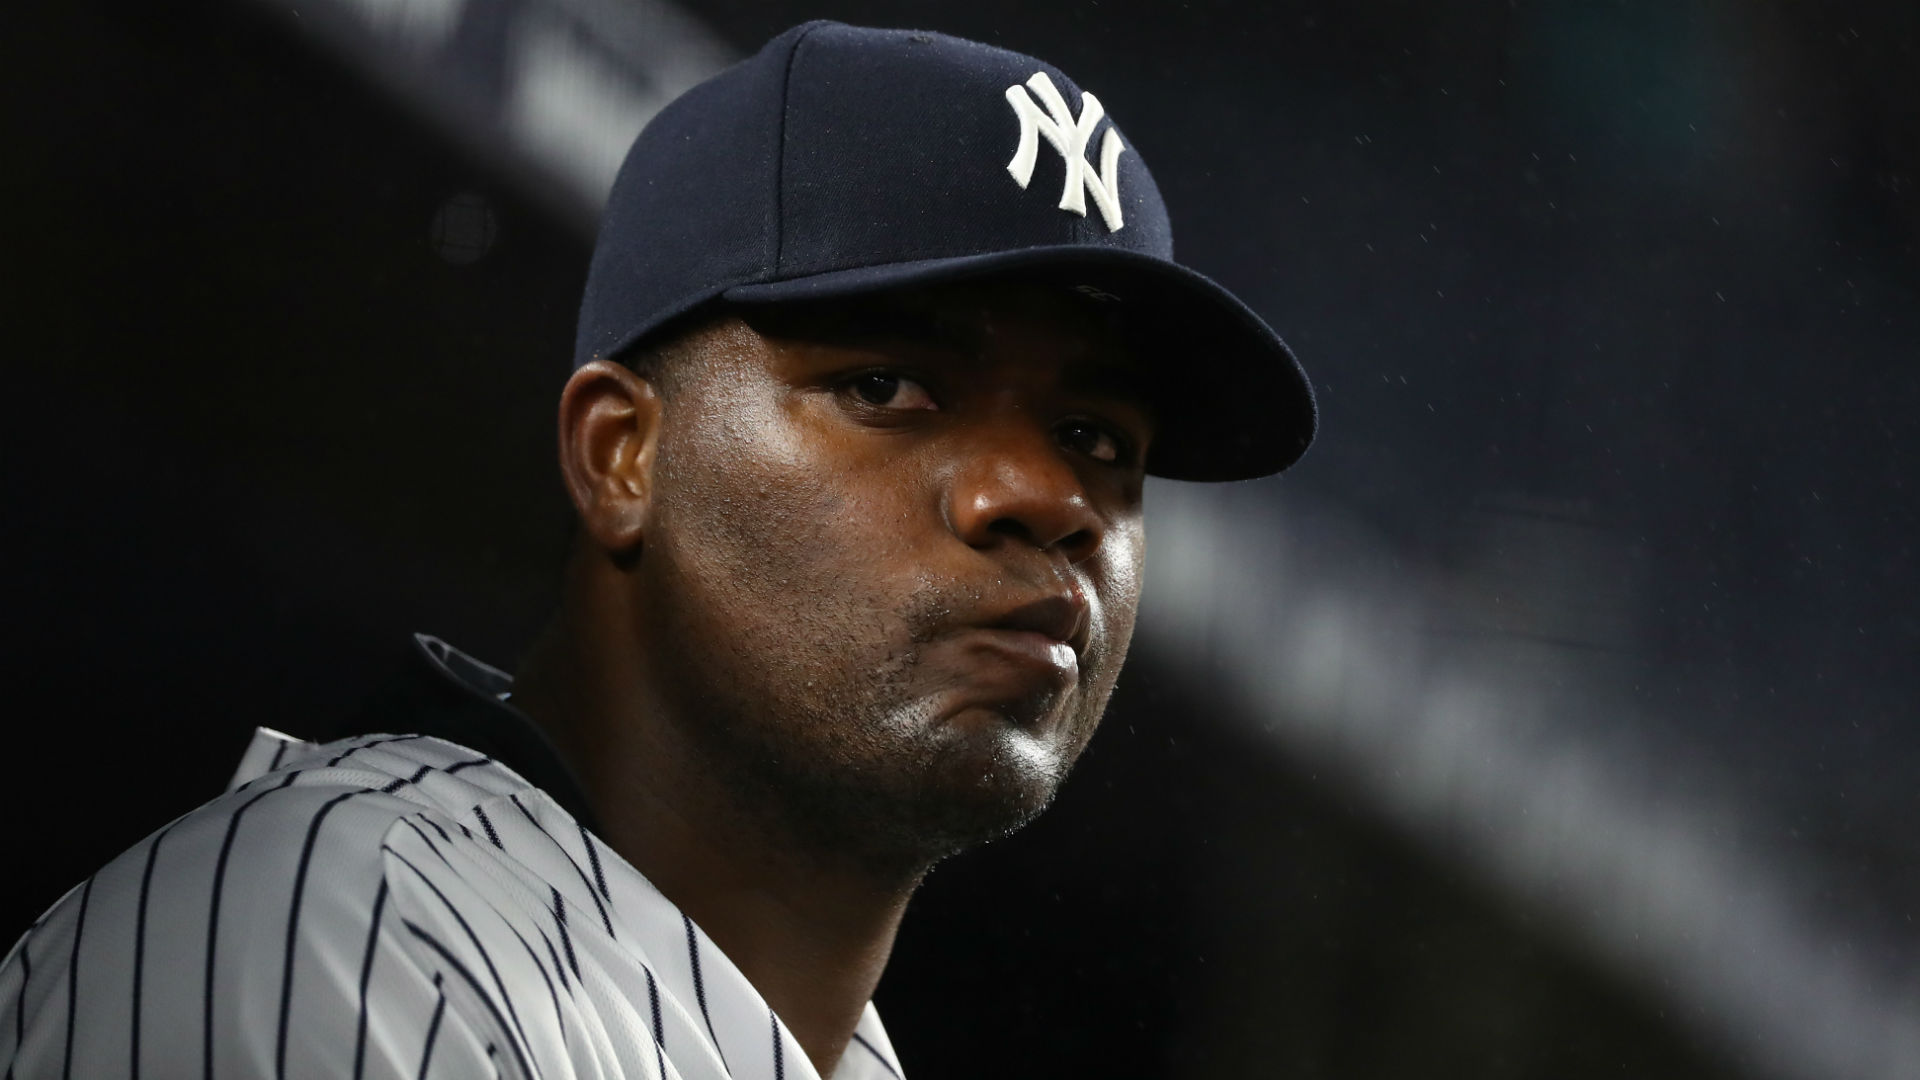 Michael Pineda Likely to Undergo Tommy John Surgery on Elbow Injury